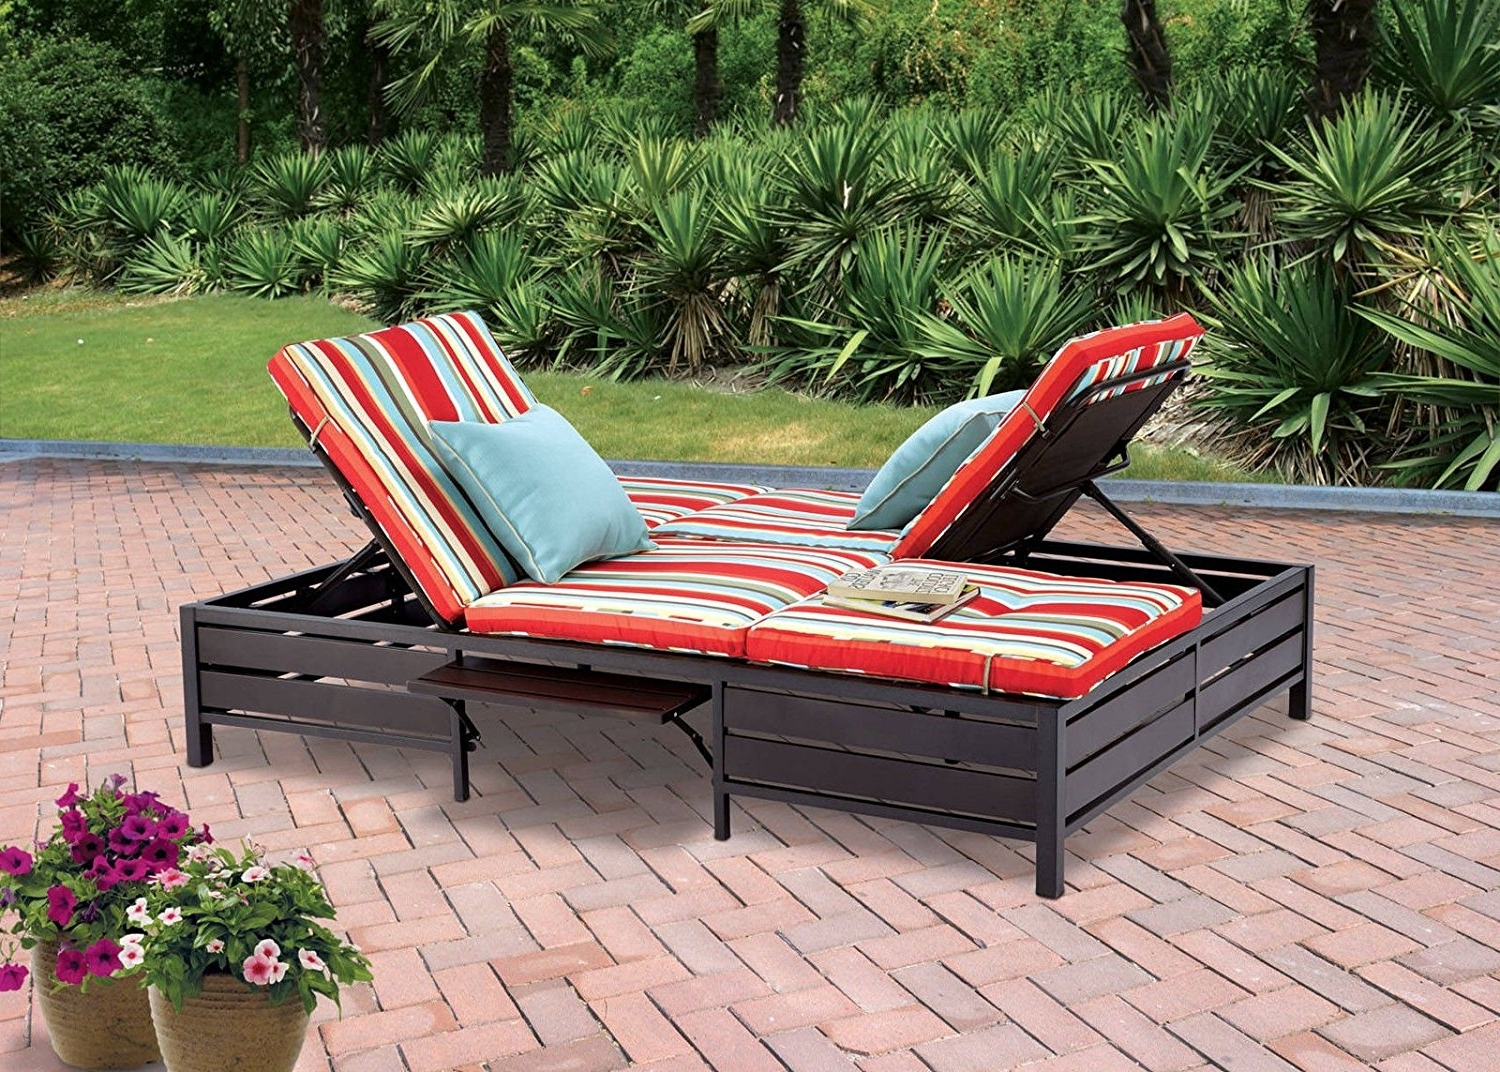 Amazon : Double Chaise Lounger – This Red Stripe Outdoor With Regard To 2018 Chaise Lounge Chairs At Walmart (View 2 of 15)